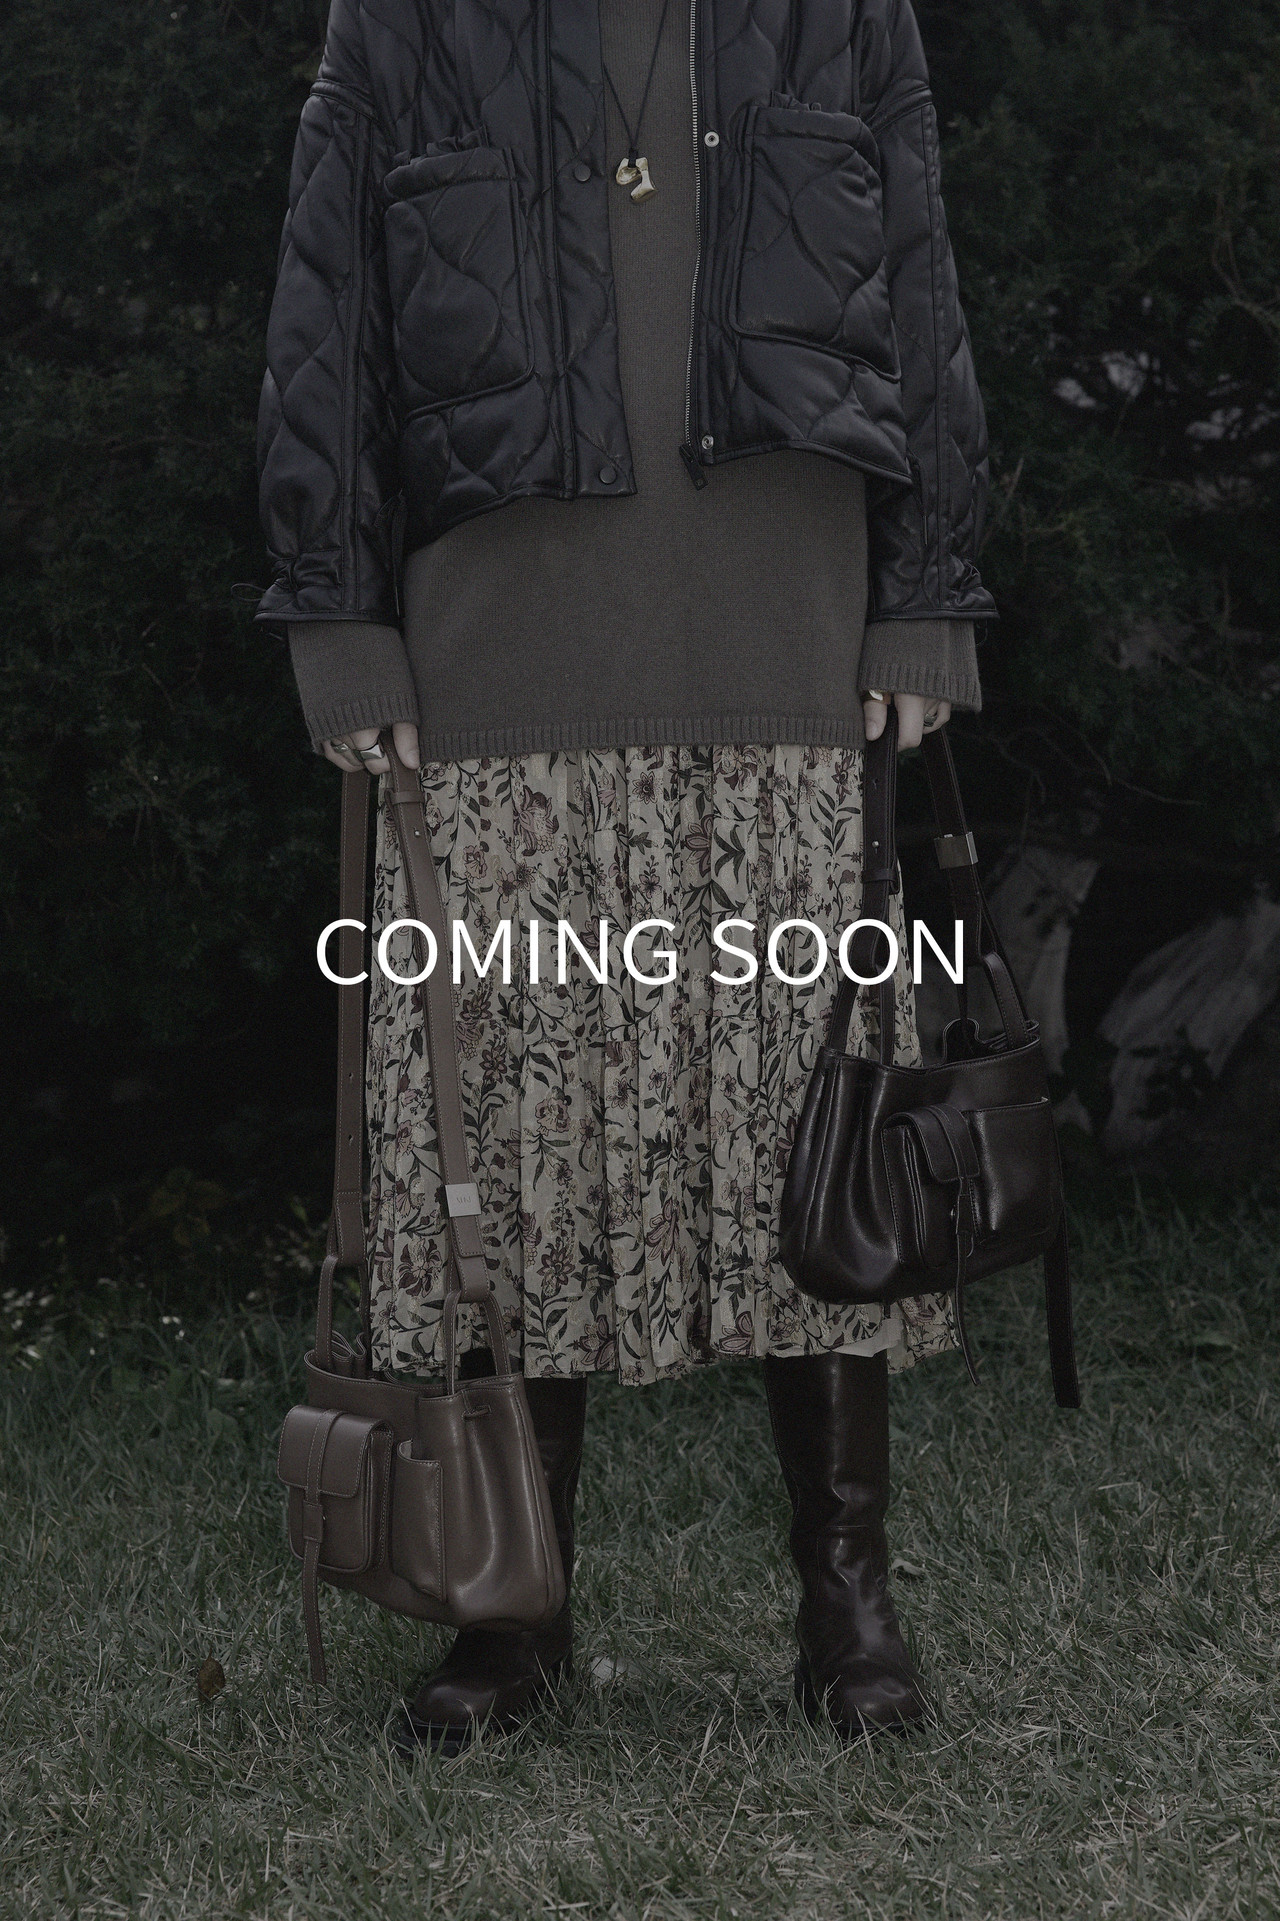 2021 FW COLLECTION